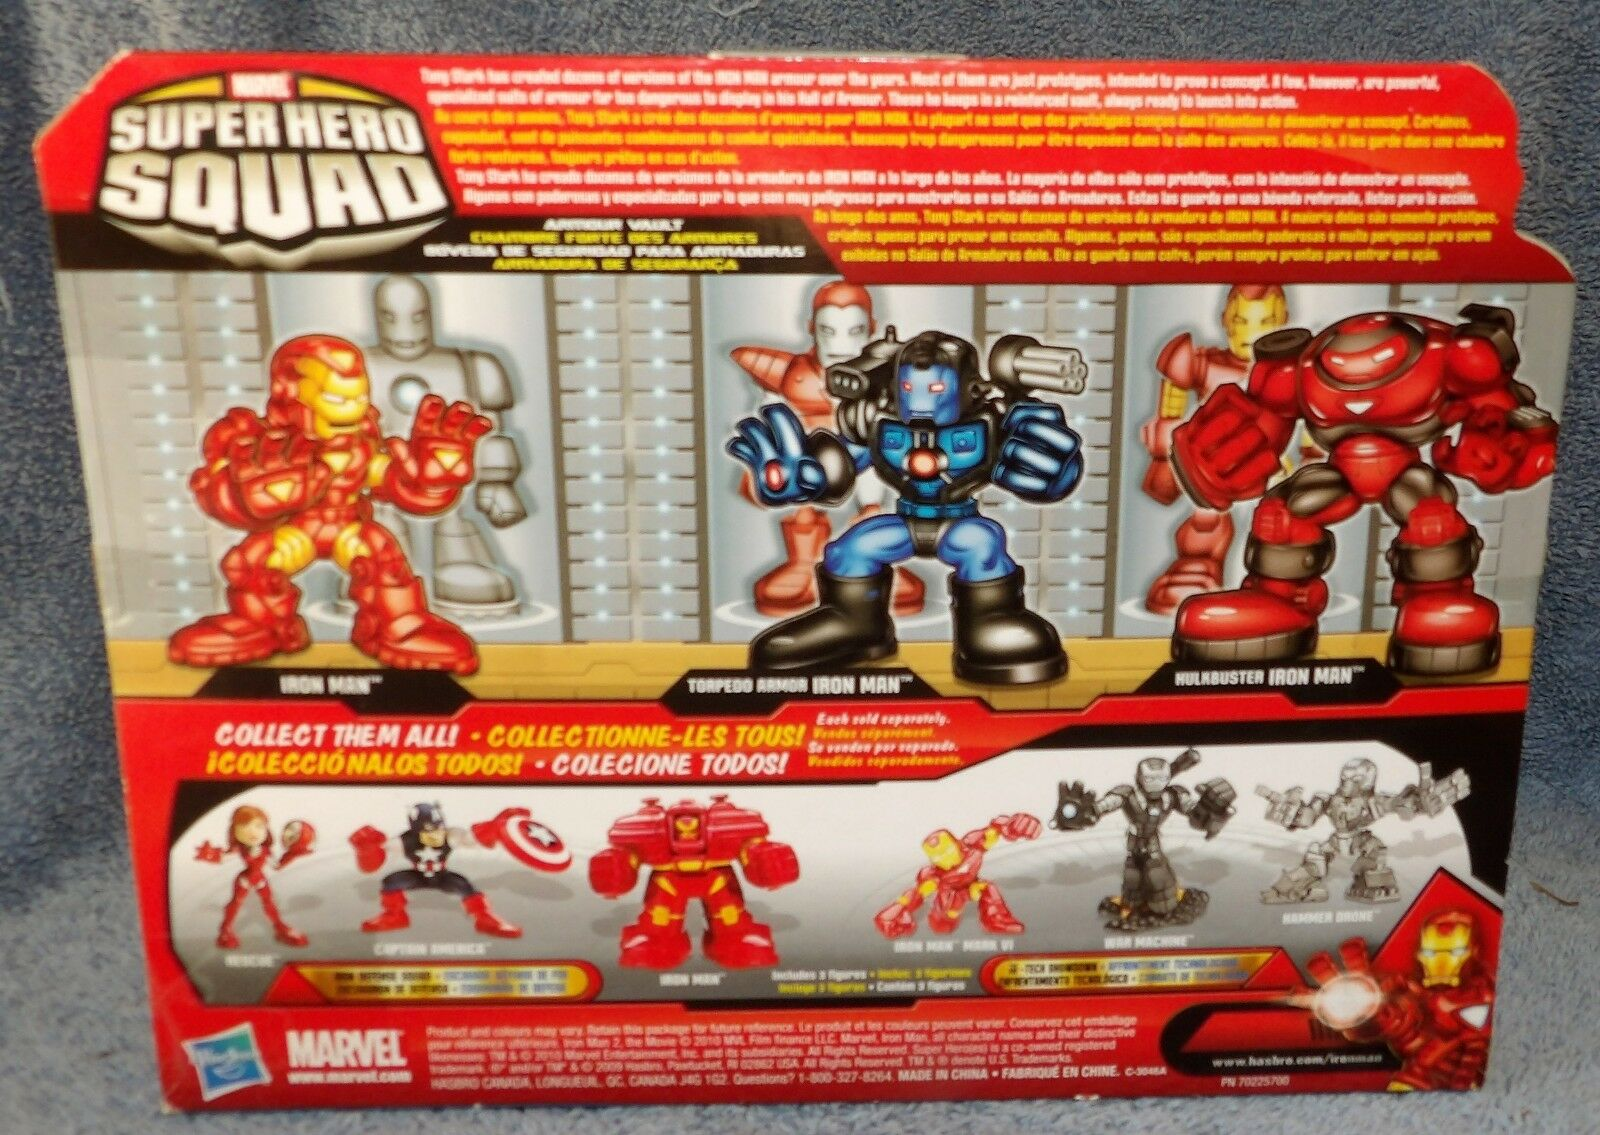 SUPER HERO SQUAD MARVEL IRON MAN 2 ARMOR ARMOR ARMOR VAULT SET AMOUR VAULT f45957